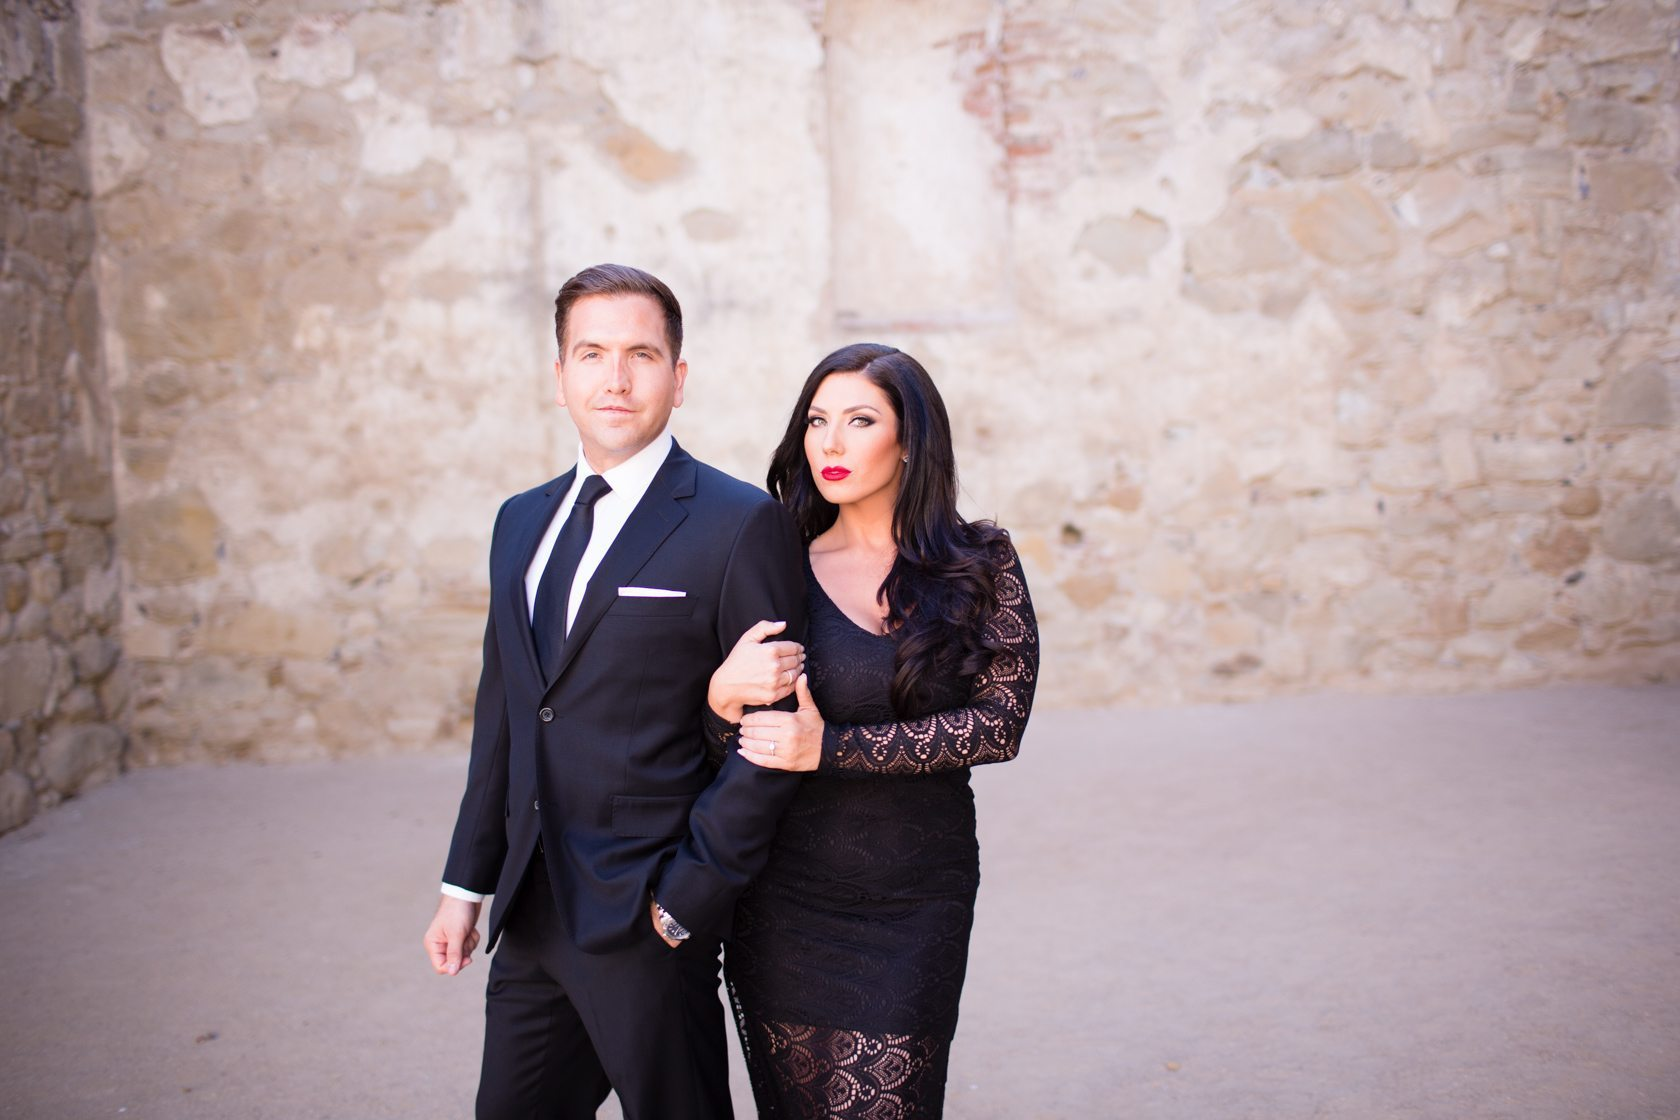 Mission_San_Juan_Capistrano_Engagement_Session_02.jpg